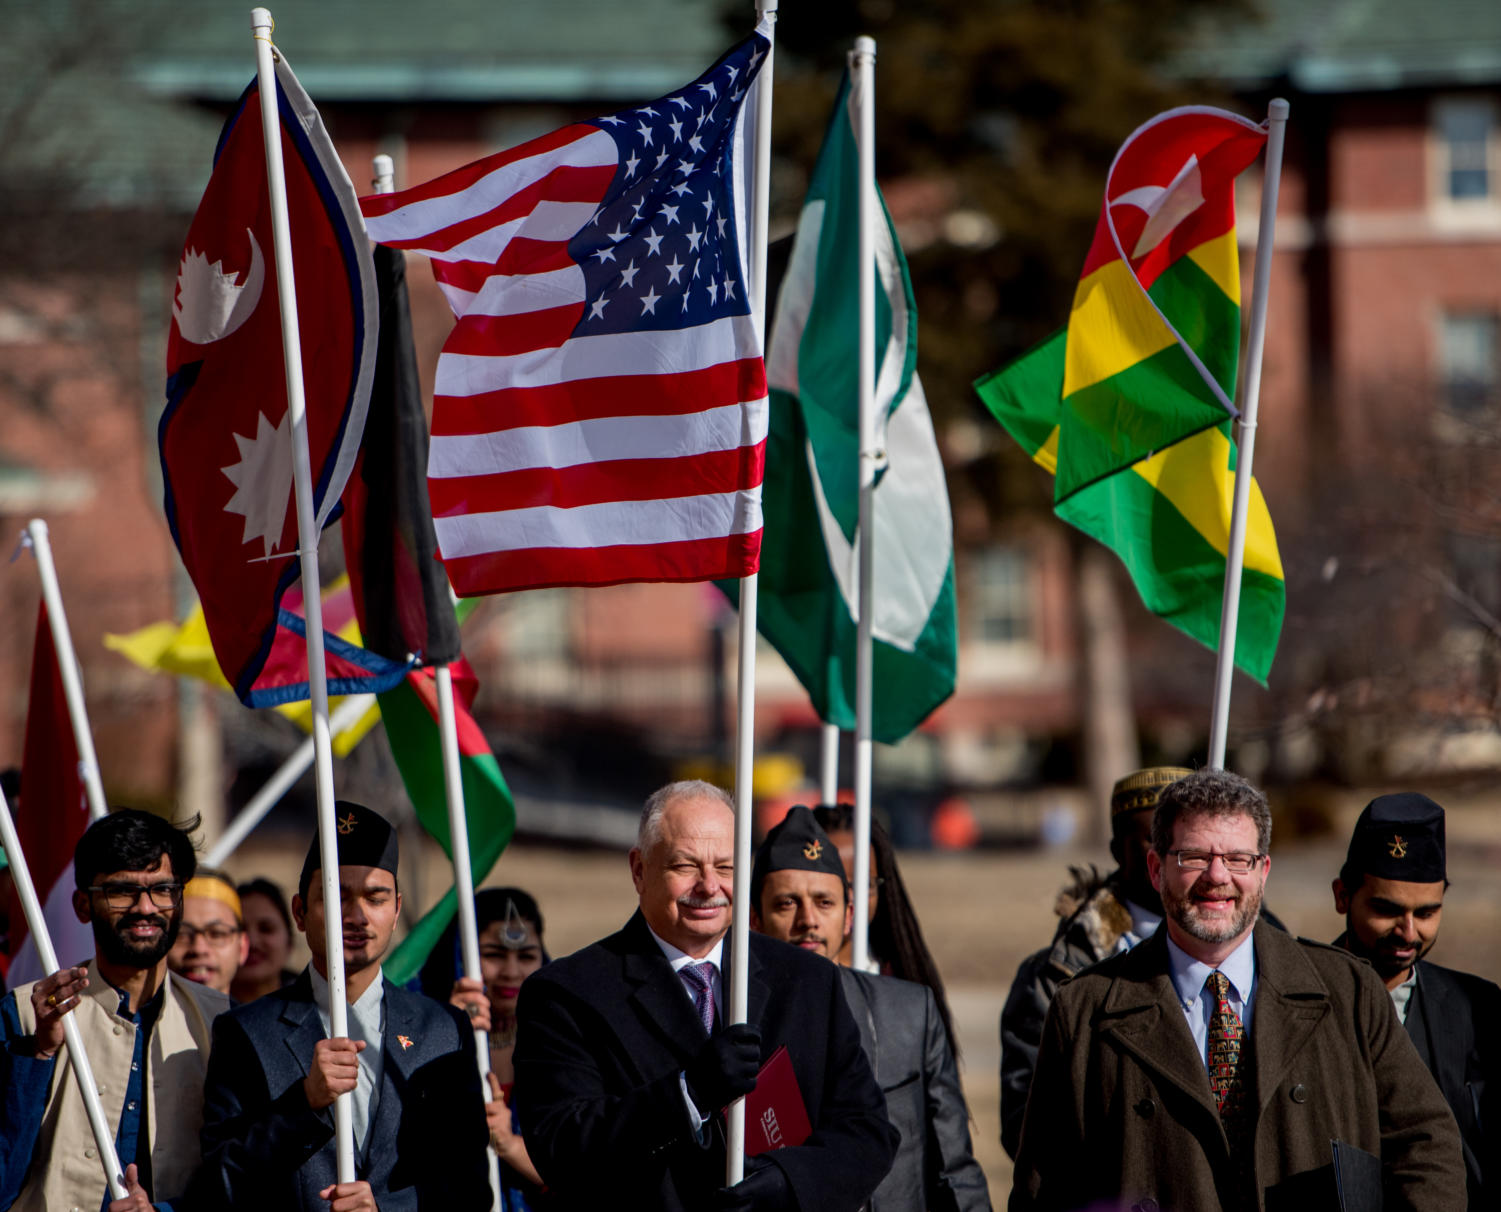 Chancellor Carlo Montemagno, center, carries the American flag from Anthony Hall to the student center on Monday, Feb. 5, 2018, during the the International Parade of Flags. (Brian Munoz | @BrianMMunoz)